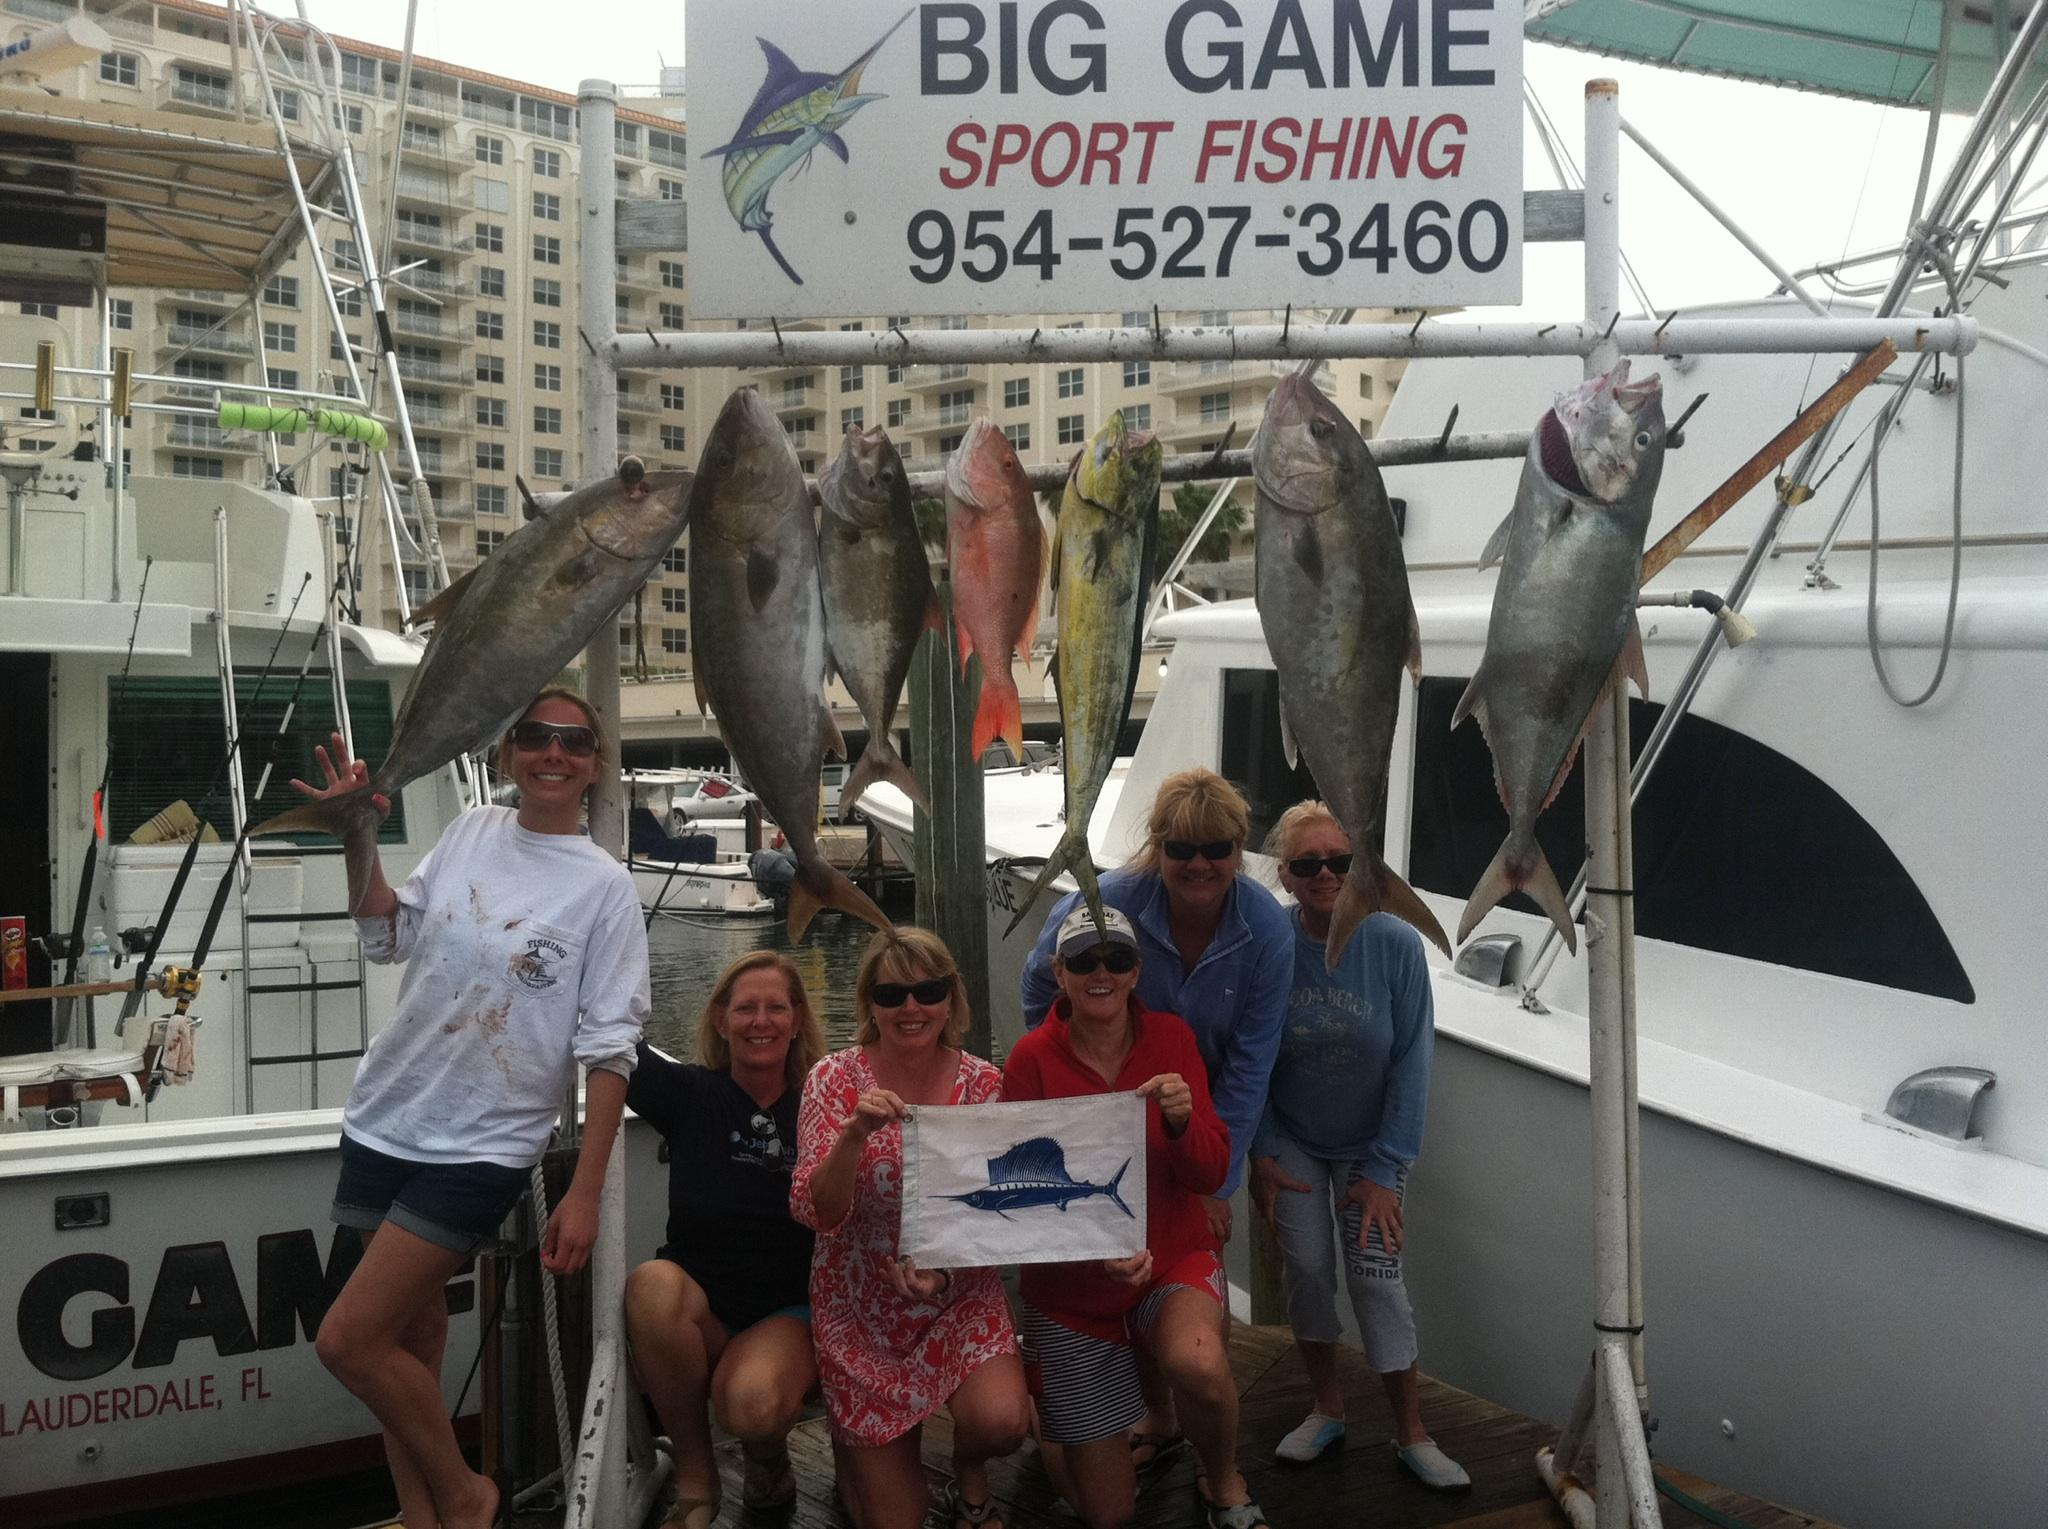 Awesome ft lauderdale fishing charter fishing headquarters for Fort lauderdale fishing